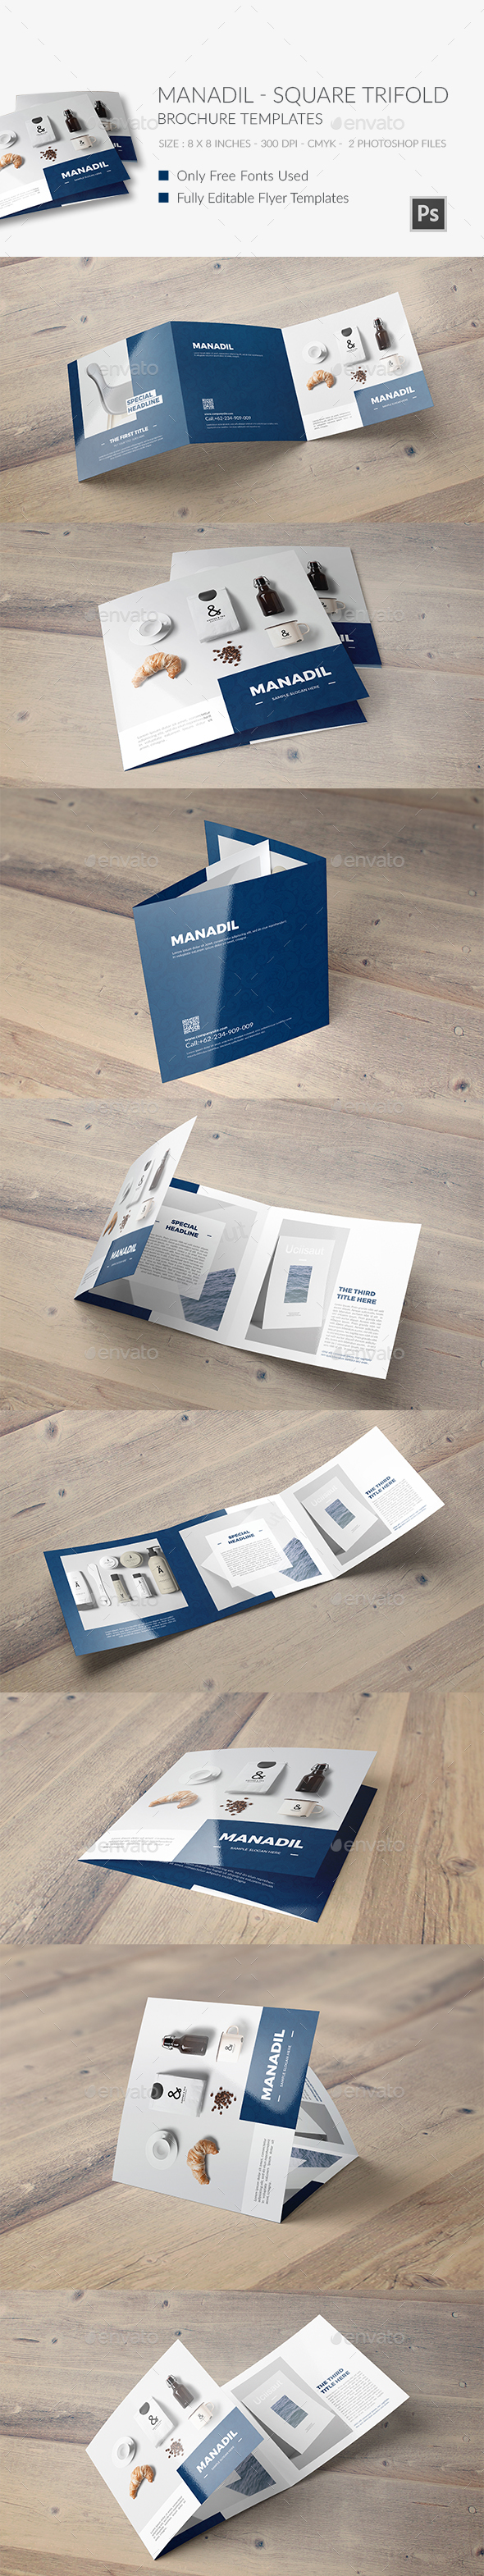 Manadil Square Trifold Brochure Template - Brochures Print Templates